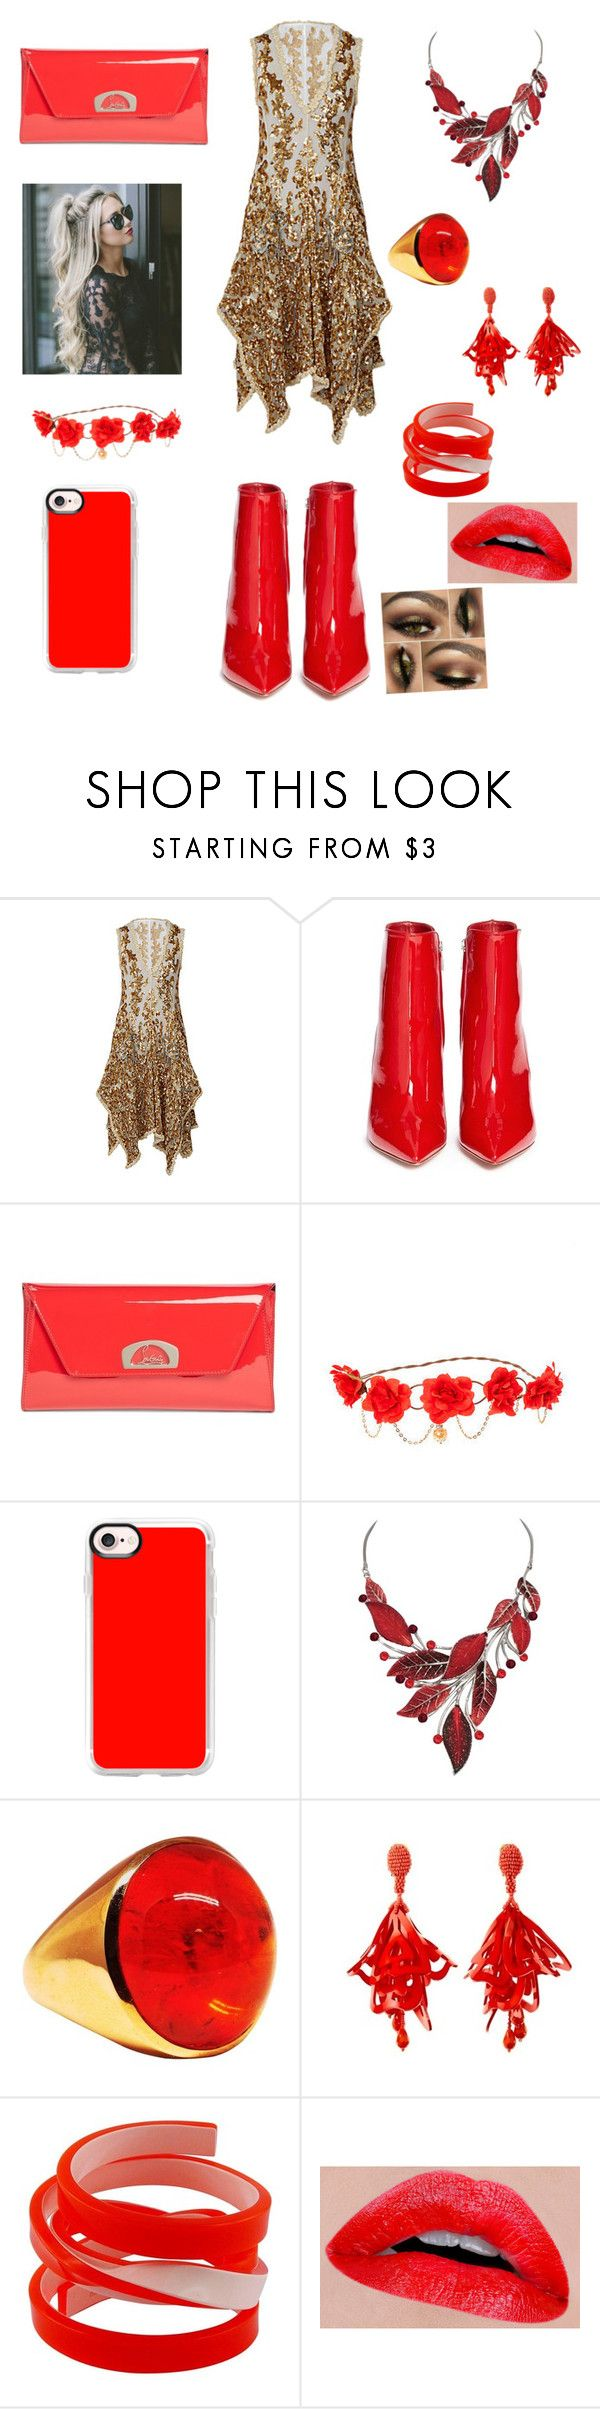 """""""Award show number 2 billboards with Ashton"""" by madison6662 ❤ liked on Polyvore featuring Gianvito Rossi, Christian Louboutin, Casetify, Oscar de la Renta and Christian Lacroix"""